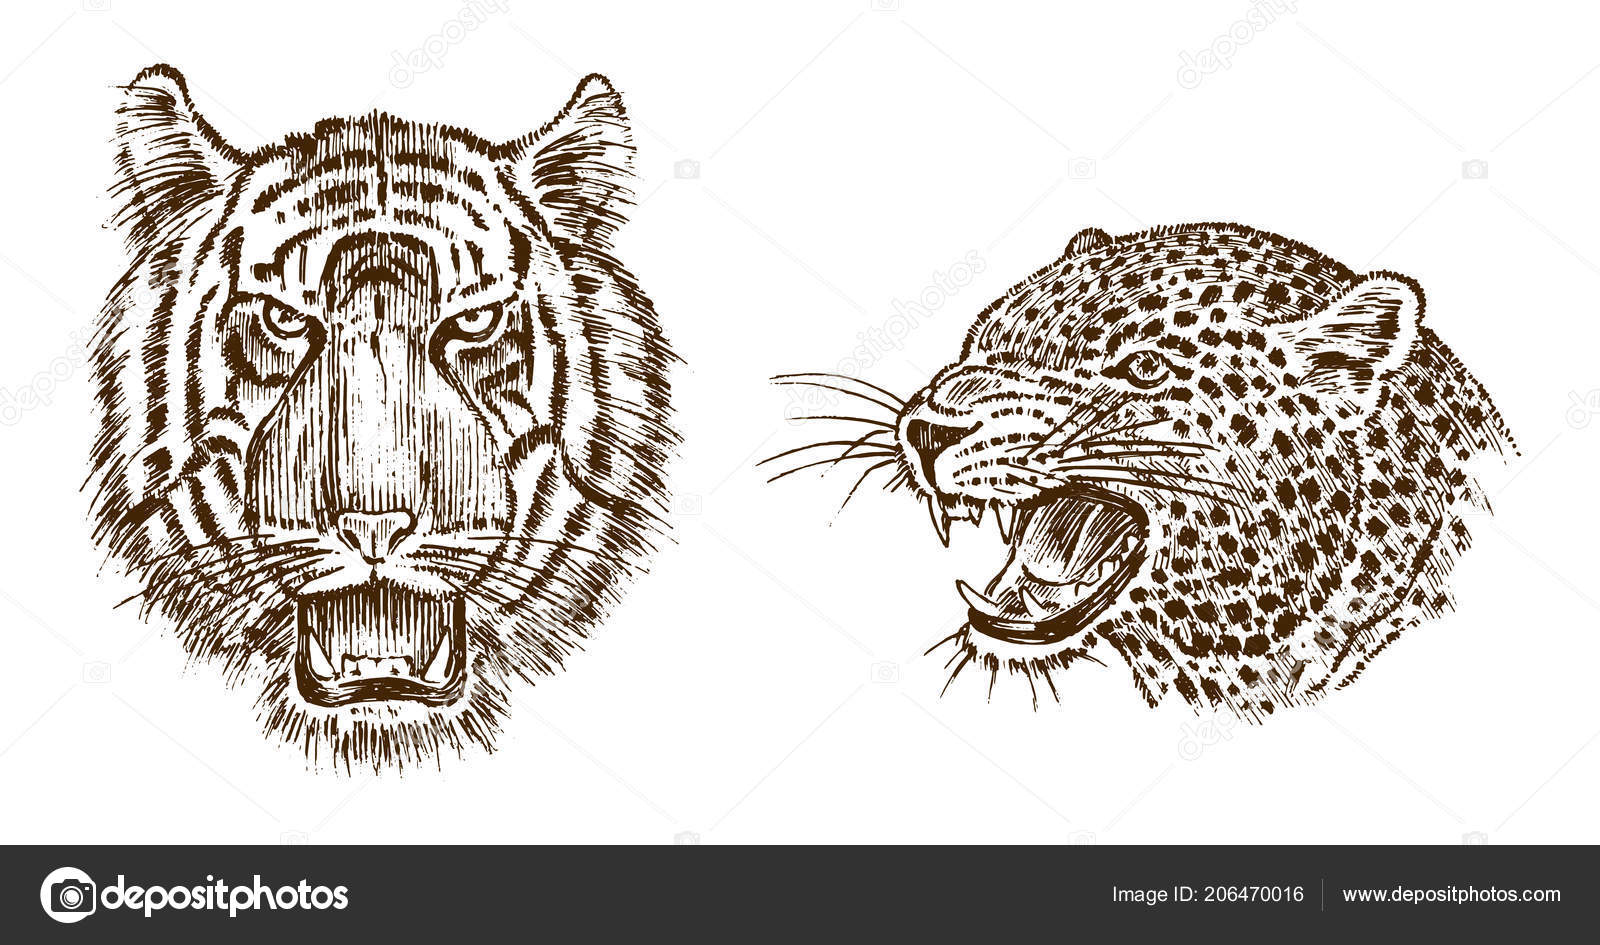 Japanese Wild Tiger And Animal Leopard Asian Cat Profile Of Head Or Face Tattoo Artwork Engraved Hand Drawn In Old Vintage Sketch Vector Surreal